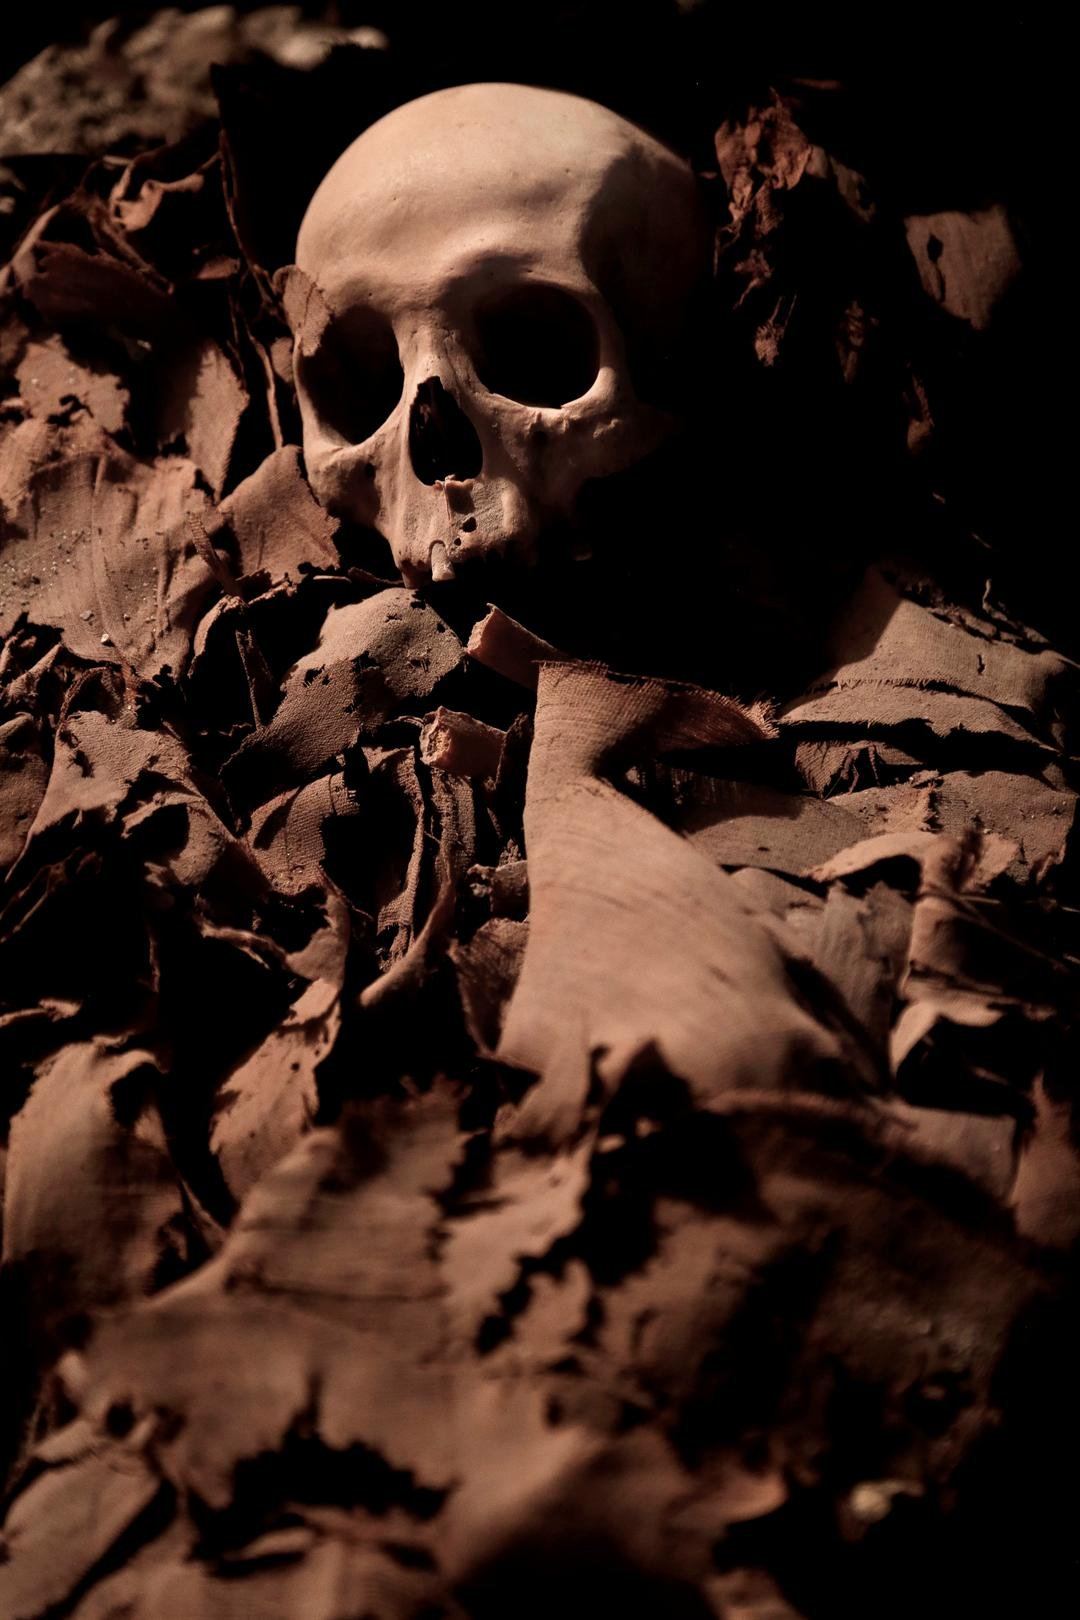 A mummy found in the New Kingdom tomb that belongs to a royal goldsmith in a burial shaft, in Luxor, Egypt, Saturday, Sept. 9, 2017. (AP Photo/Nariman El-Mofty)